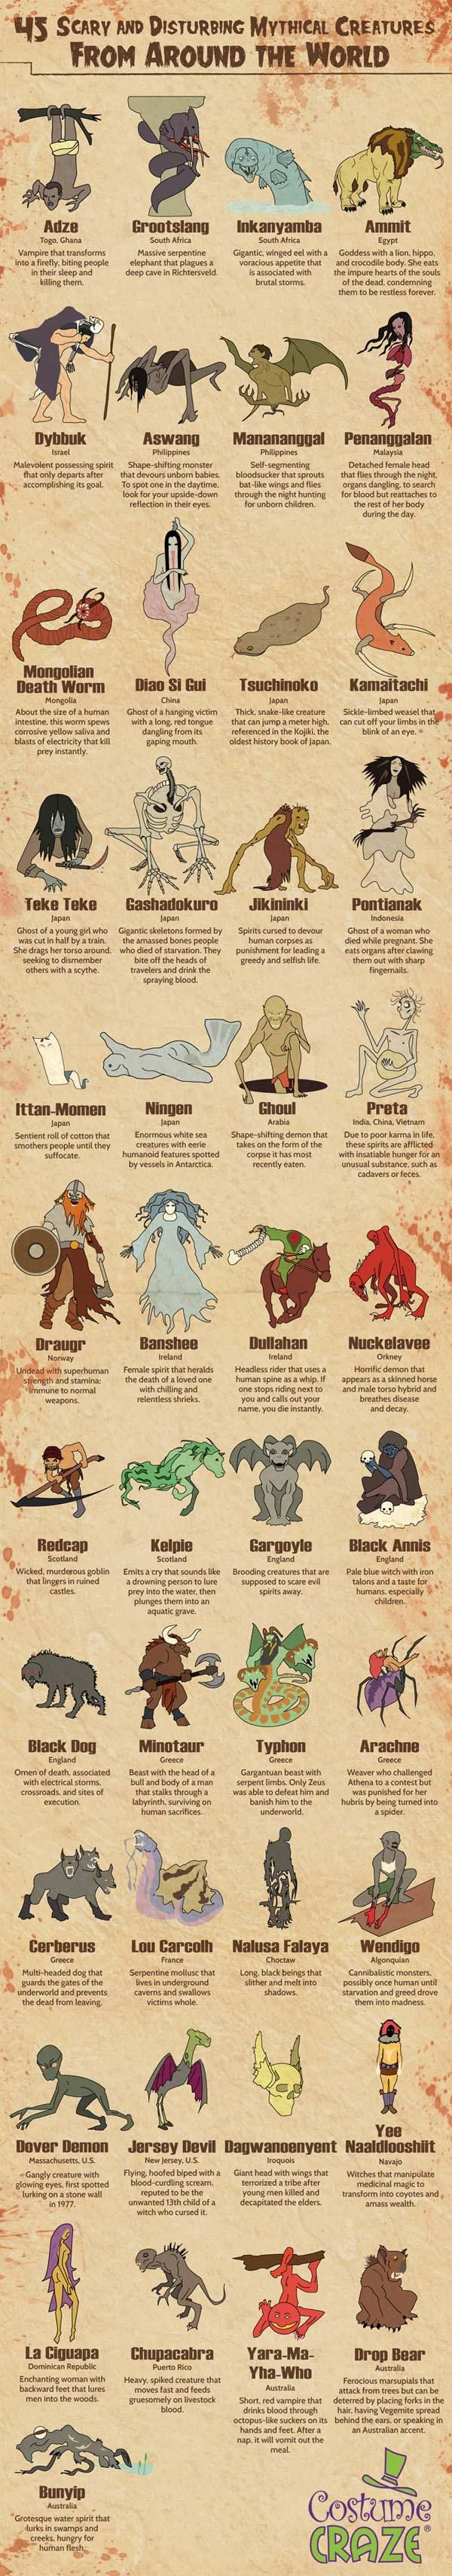 45 Scary Mythical Creatures from Around the World #infographic